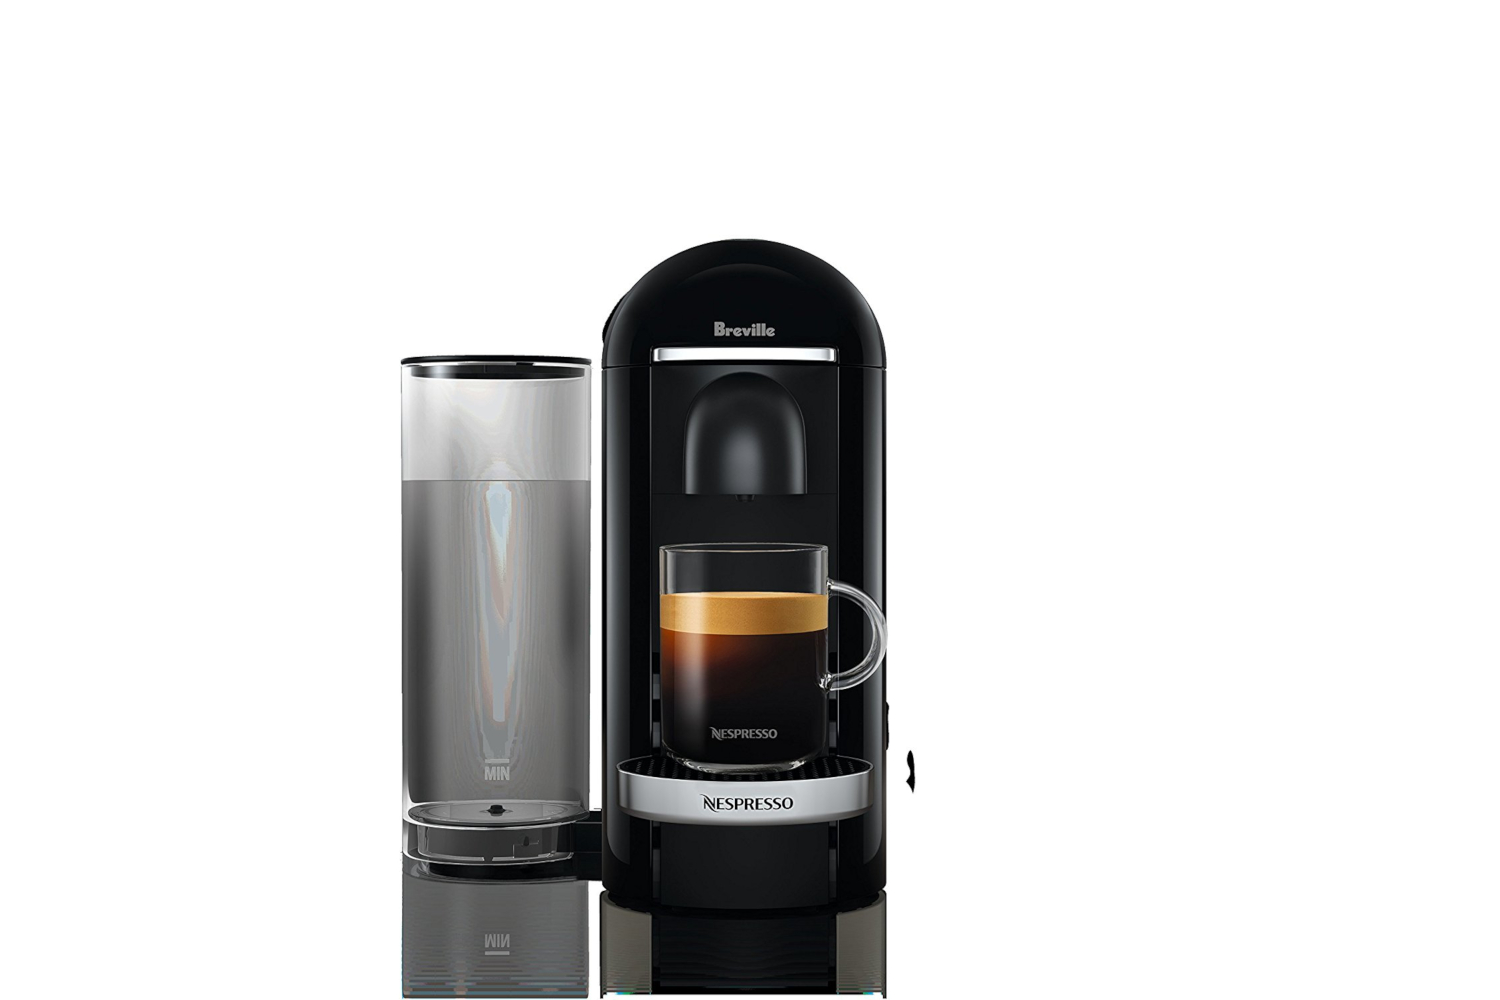 Nespresso VertuoPlus Coffee & Espresso Machine by De'Longhi w/Aerocinno3 - Limited Edition - Black Matte